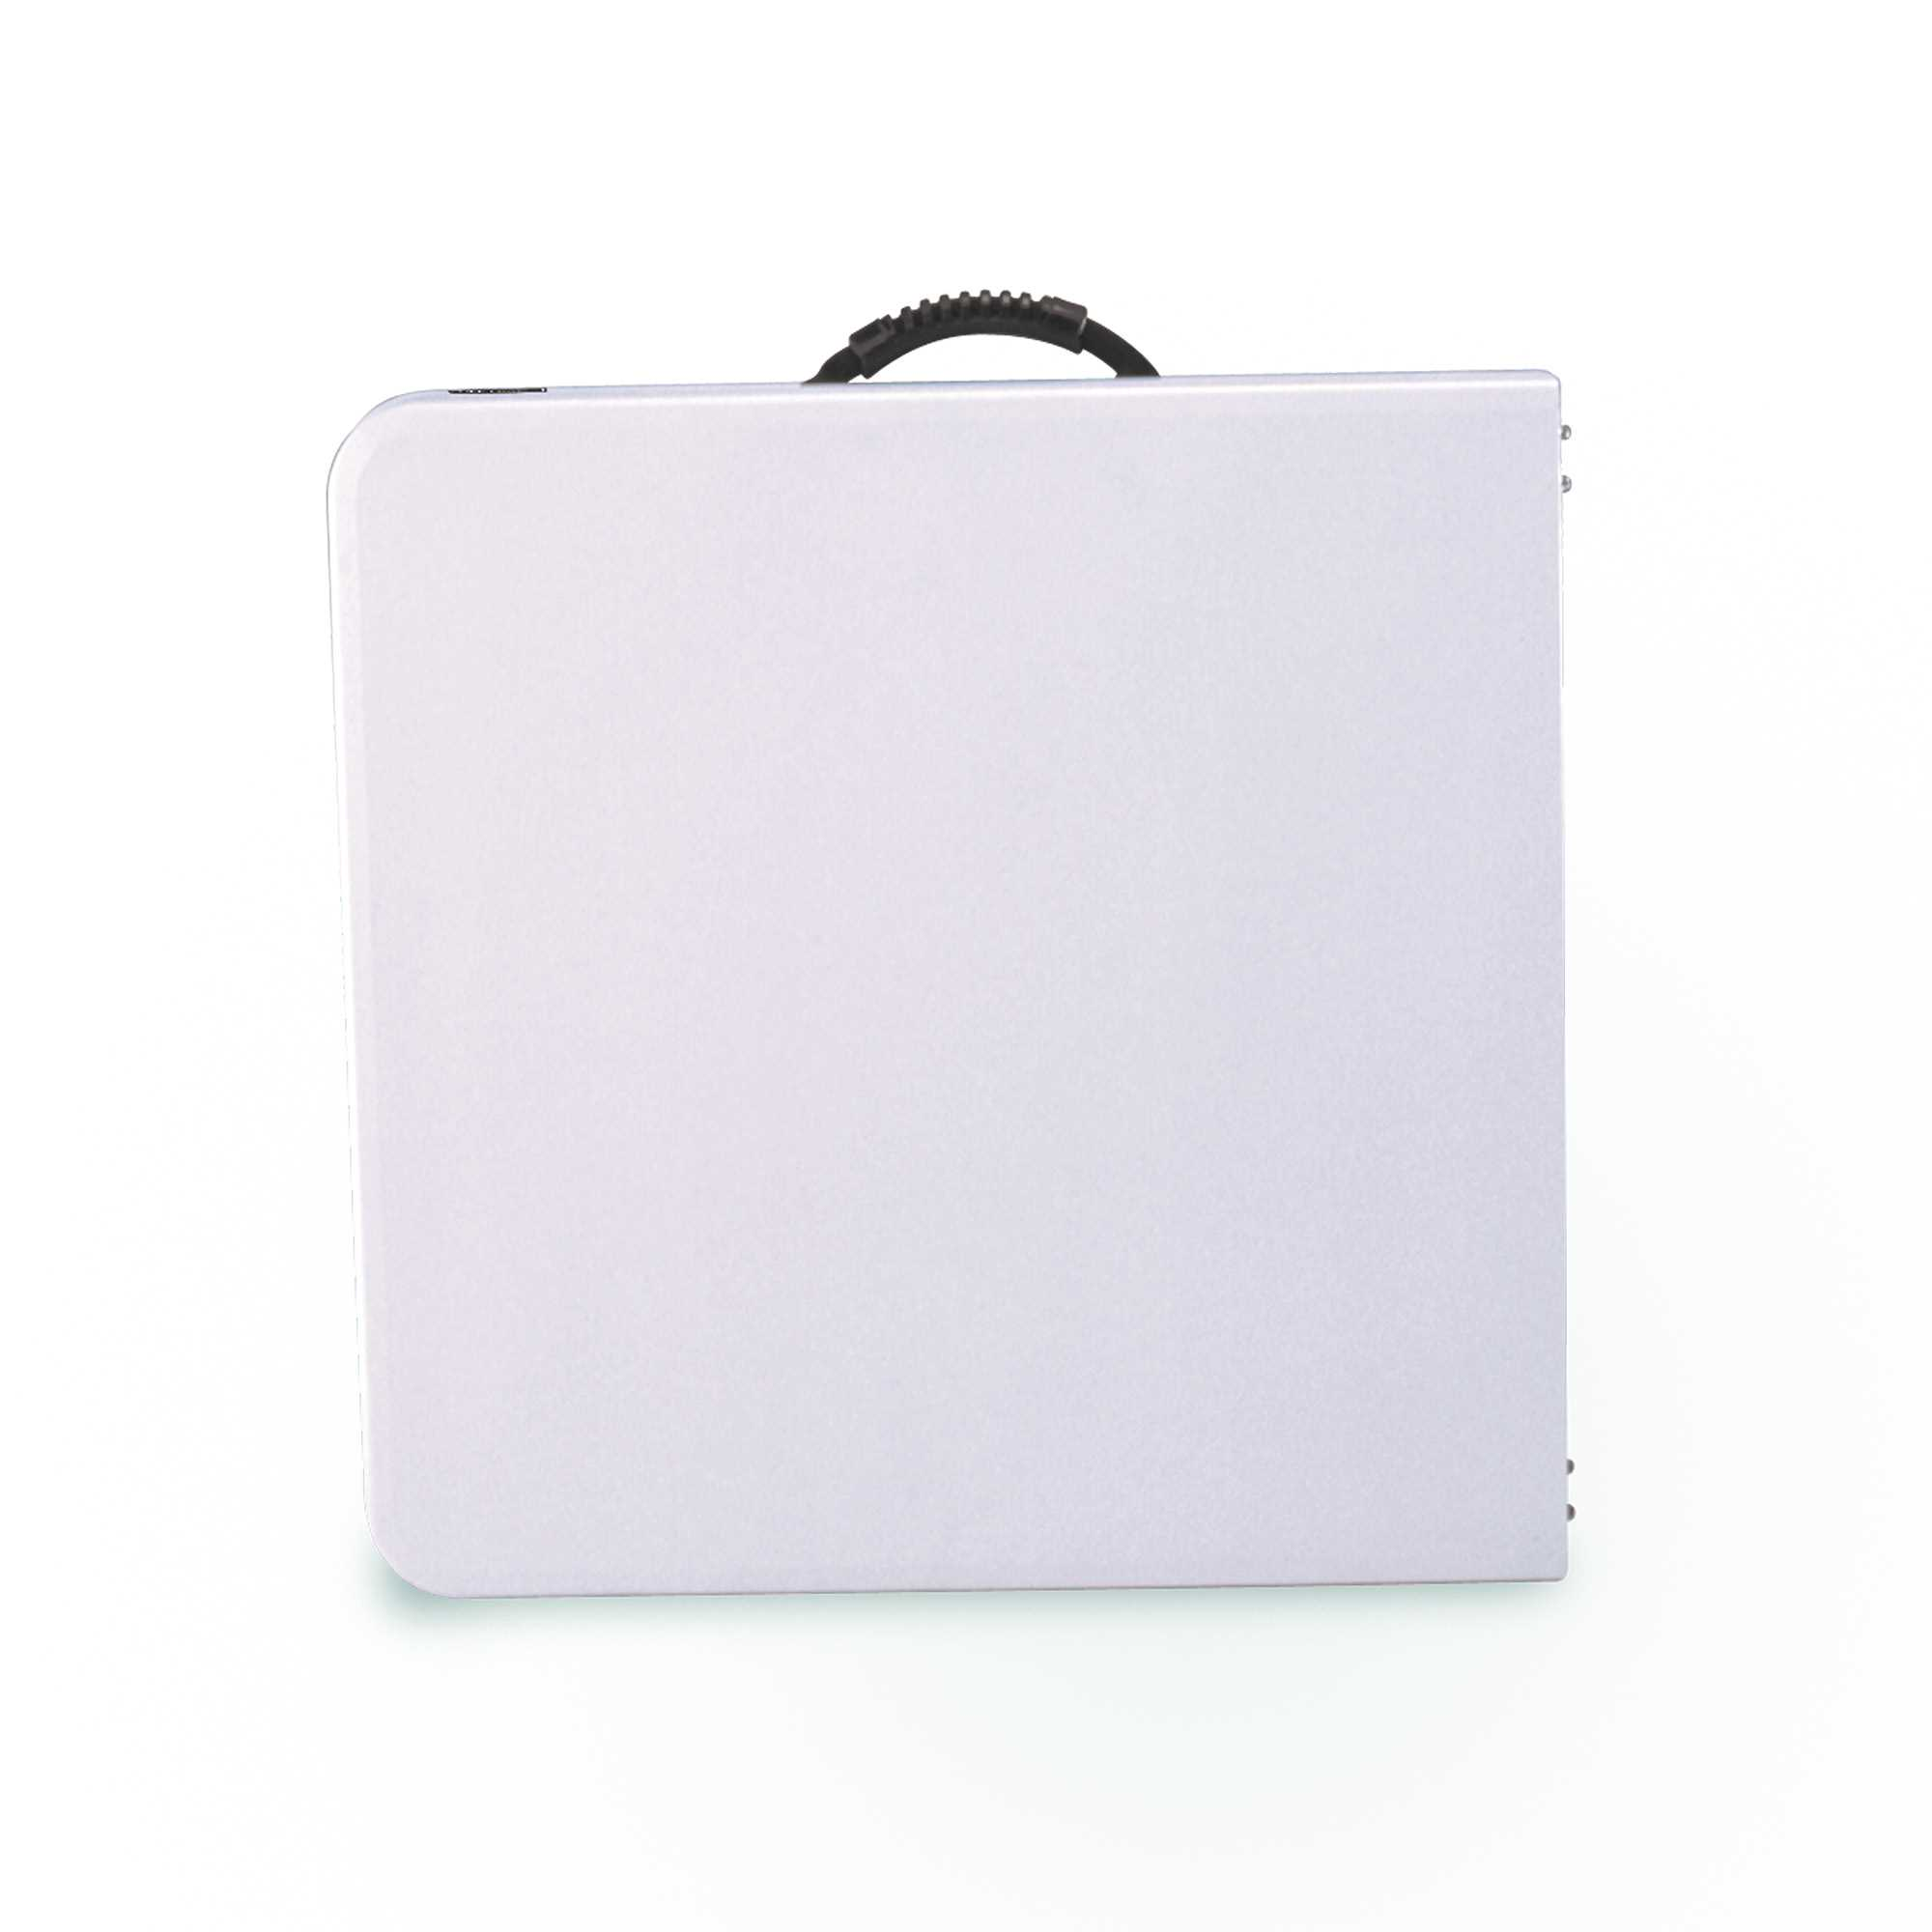 Table Valise + 4 Tabourets Table Pliable En 2 Valise Ajustable Rectangulaire Blanc 122cm